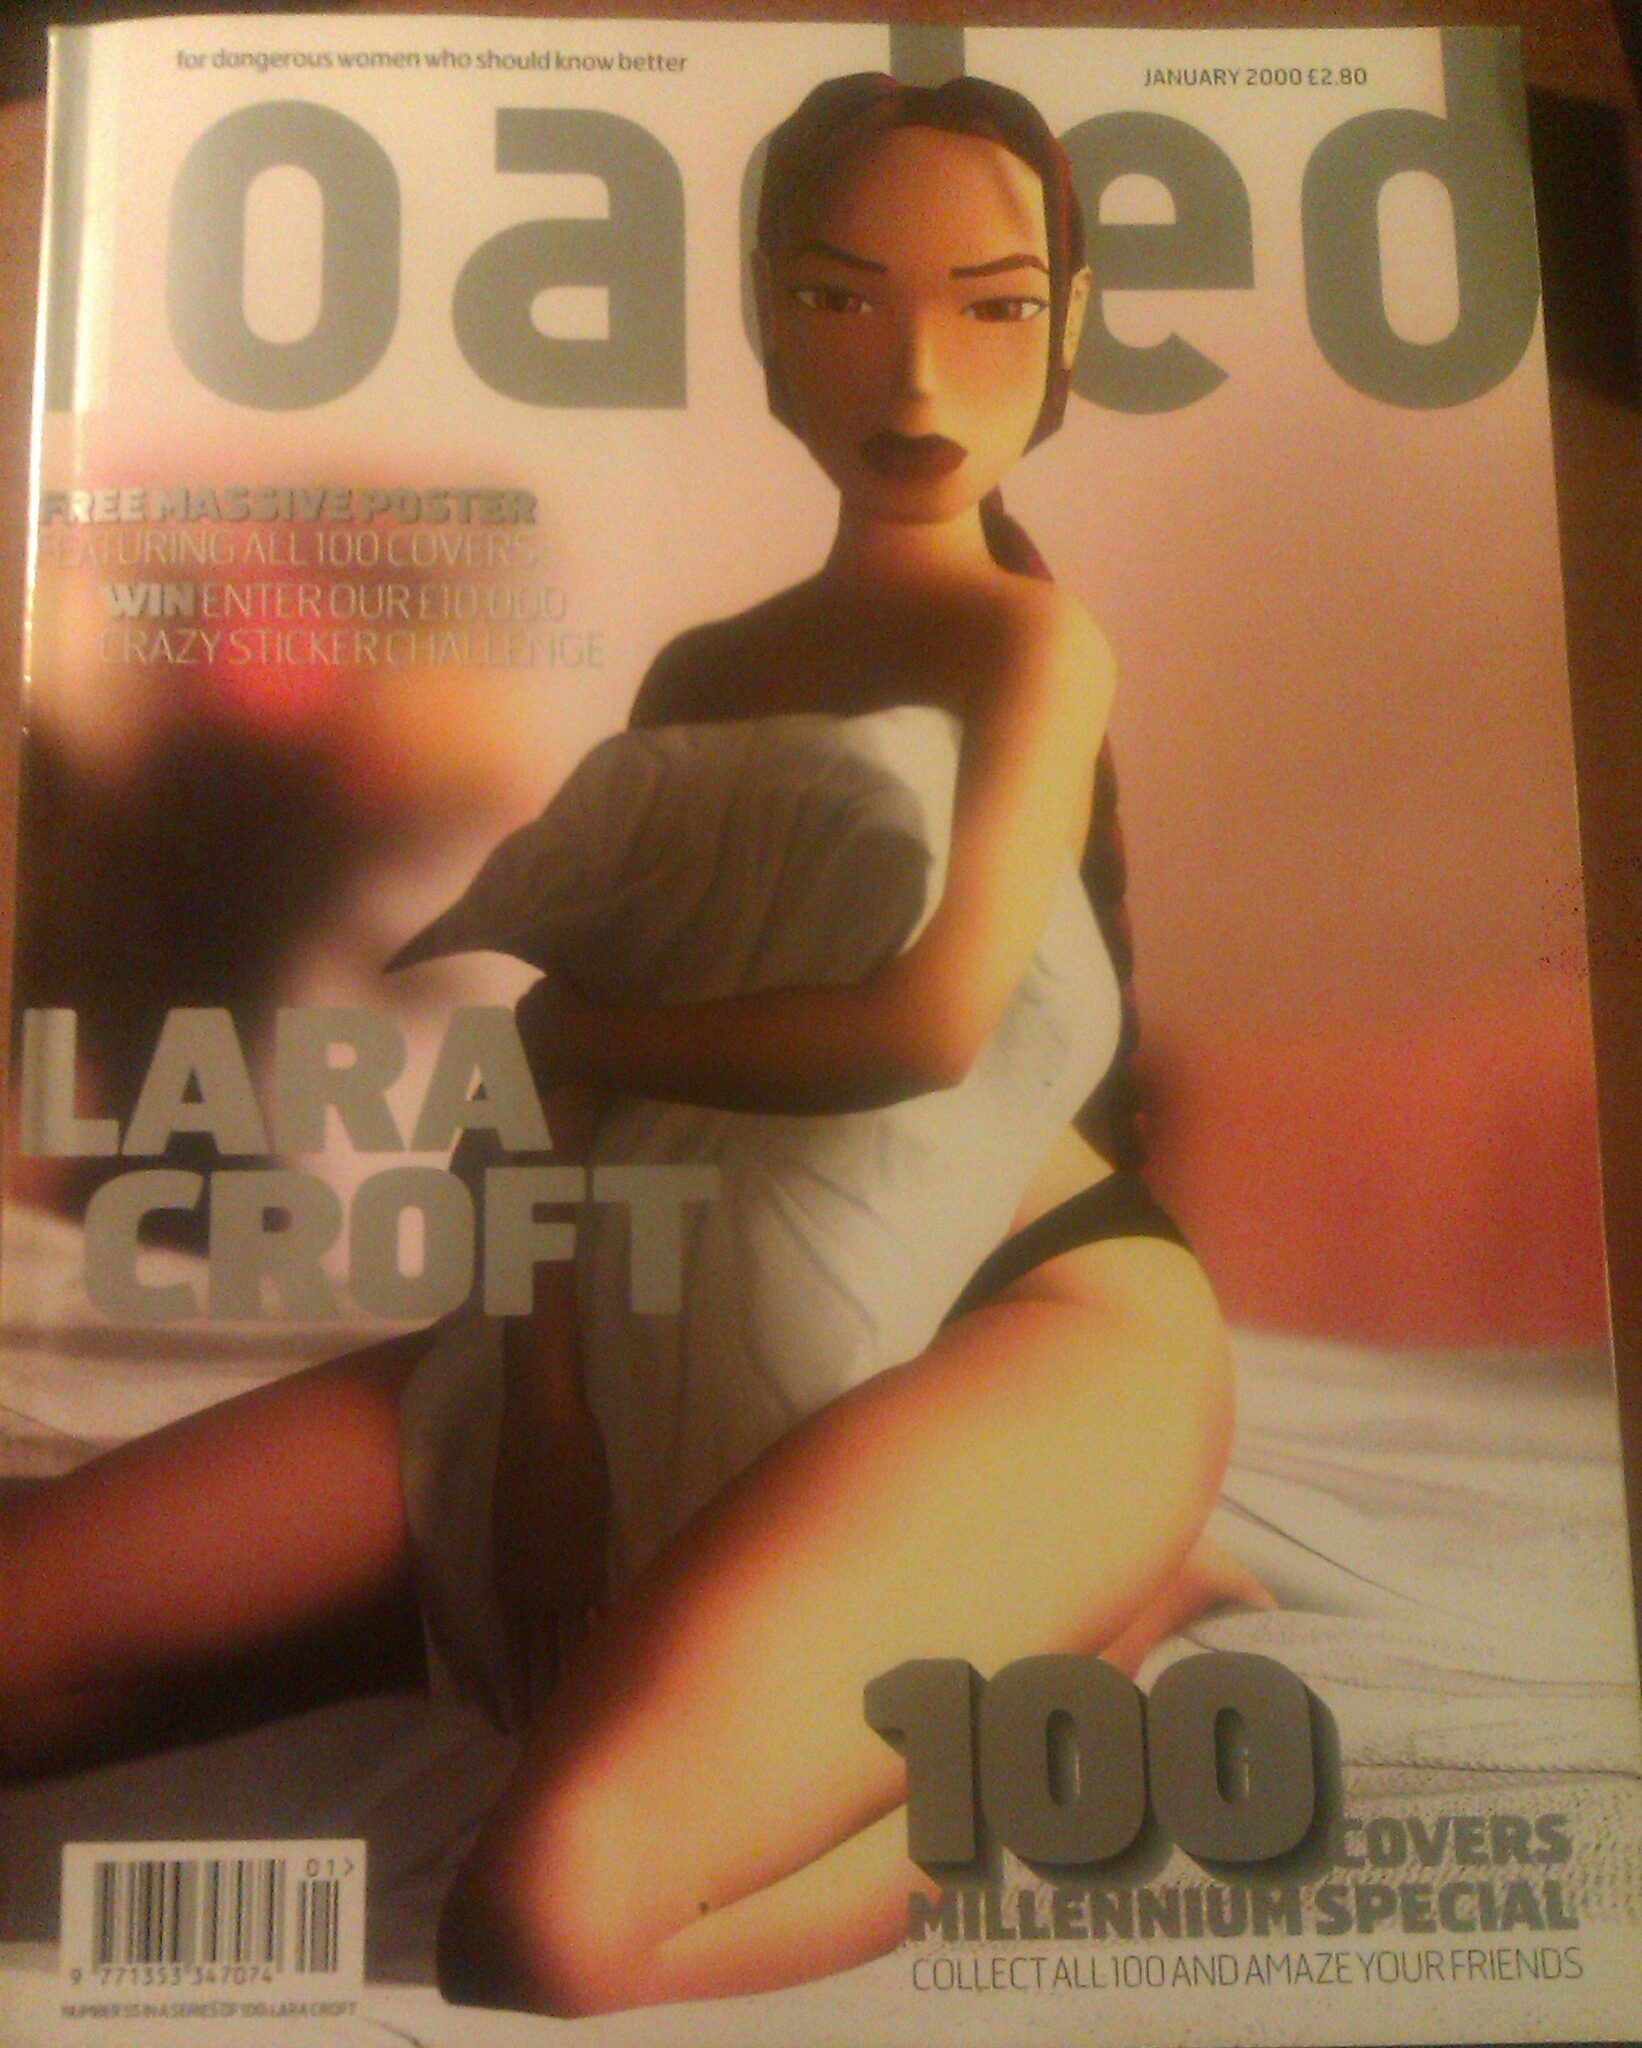 Lara Croft Loaded magazine